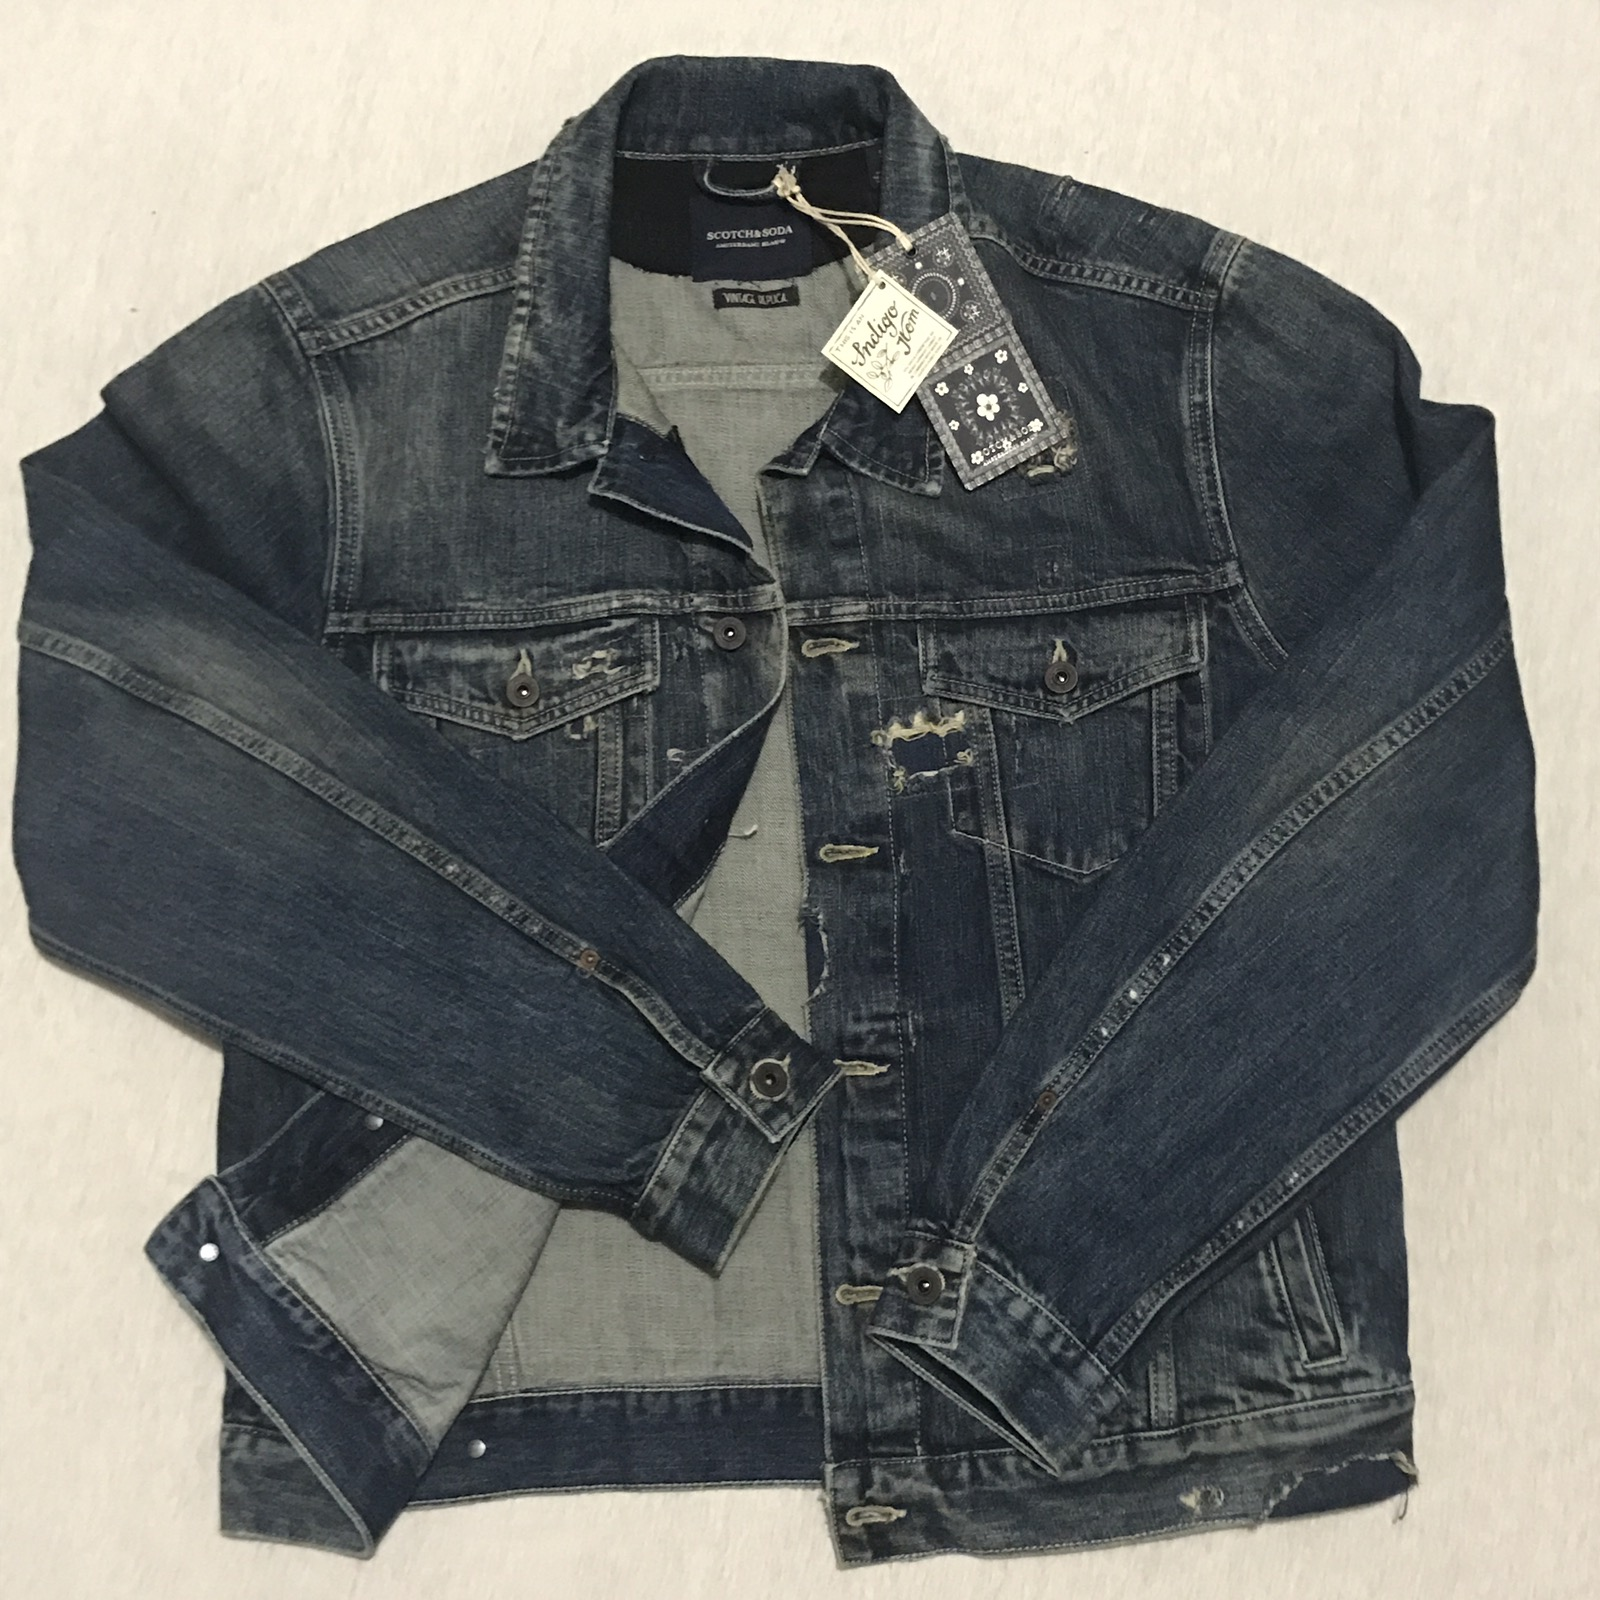 Jean Scotch Soda Scotch Soda Denim Jean Jacket